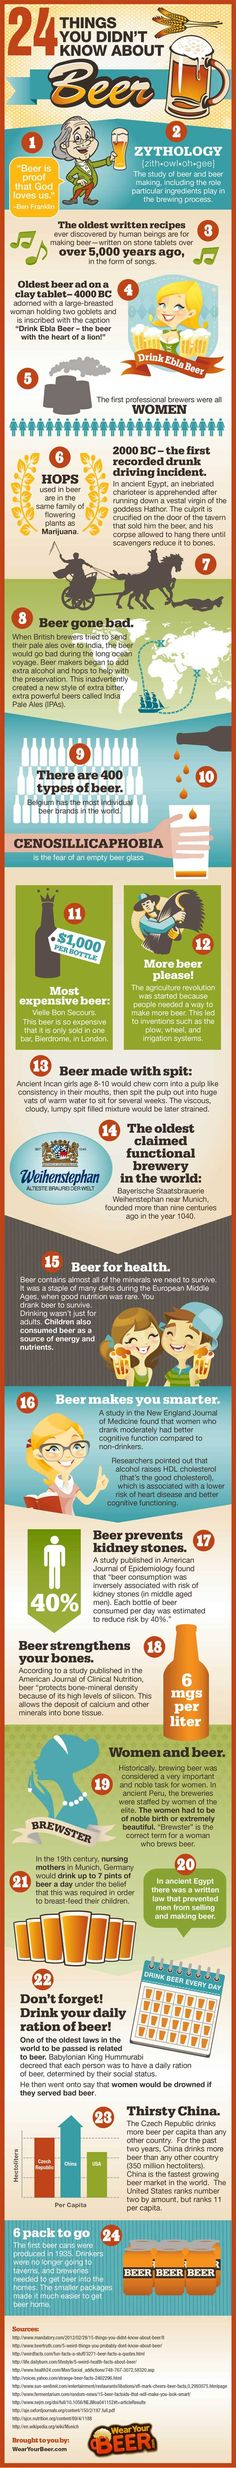 24 Fun Facts About Beer - Infographic